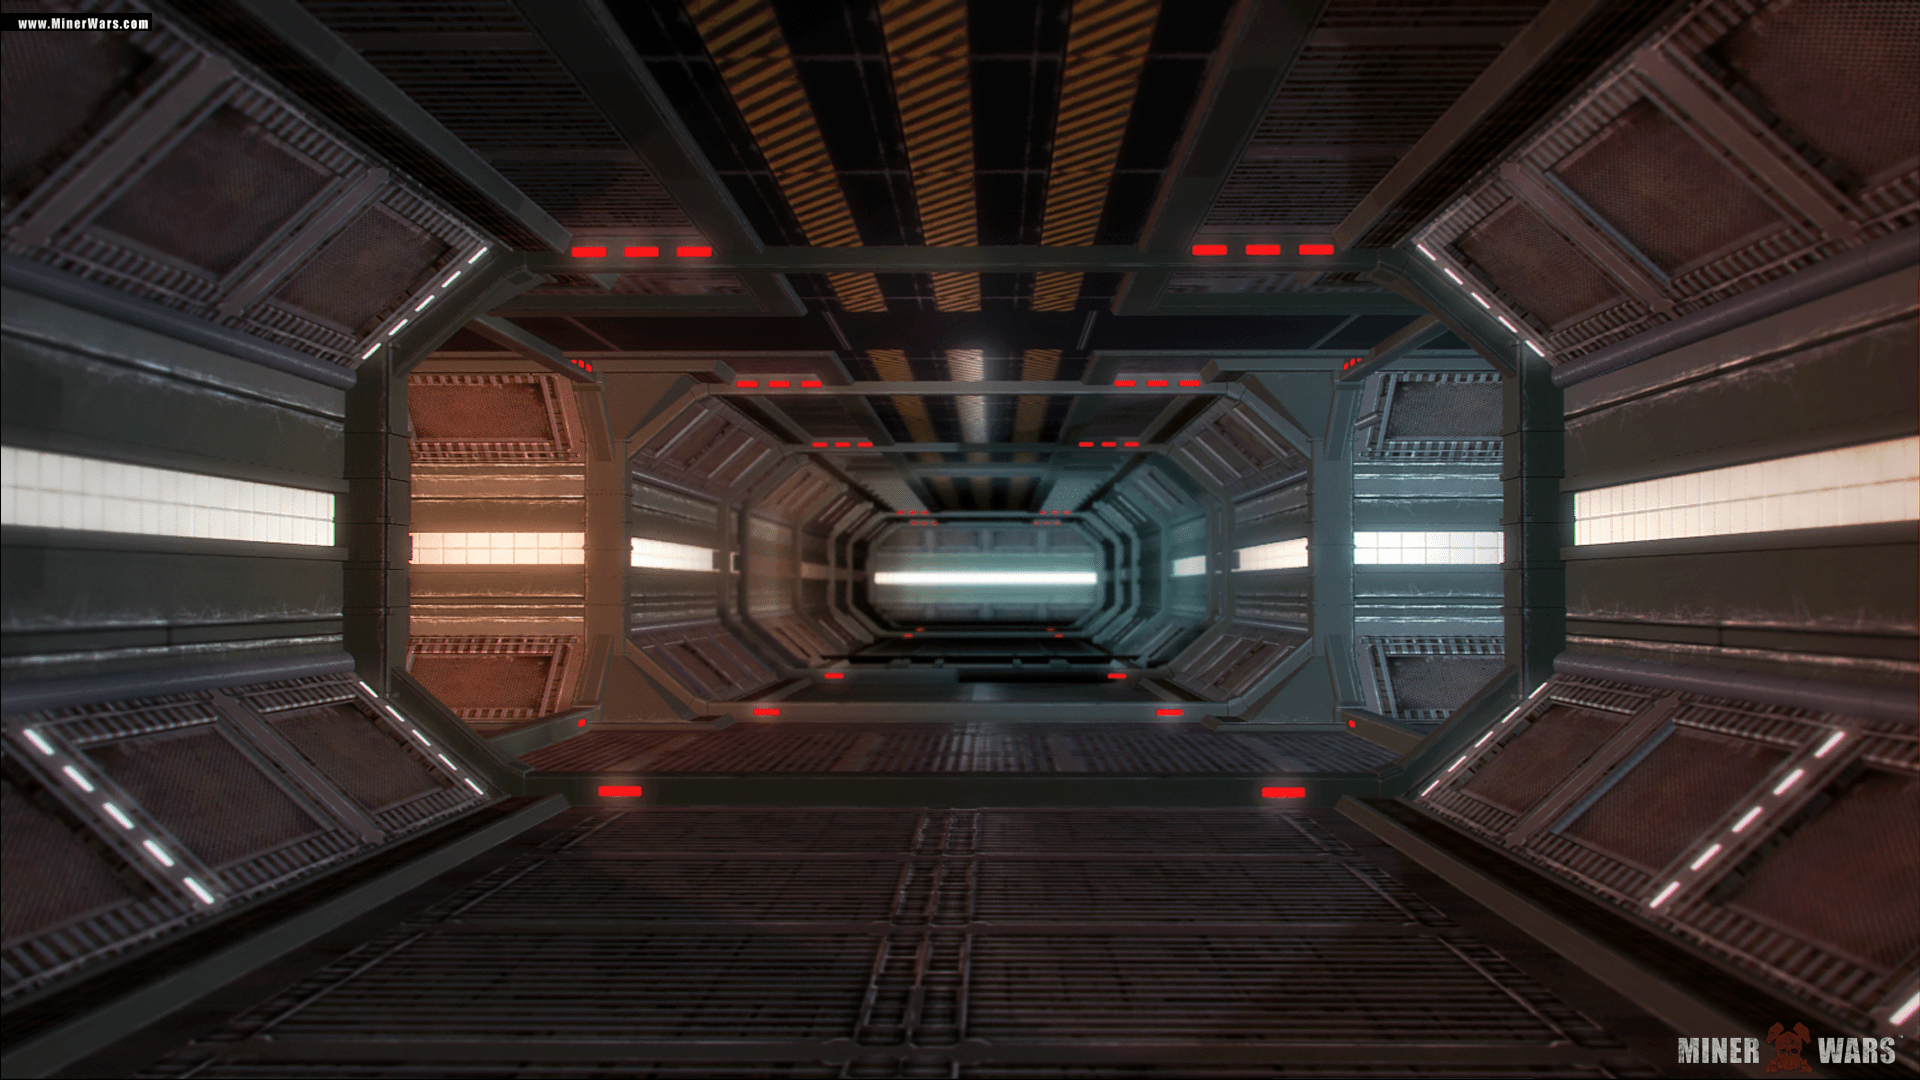 future space station inside - photo #35